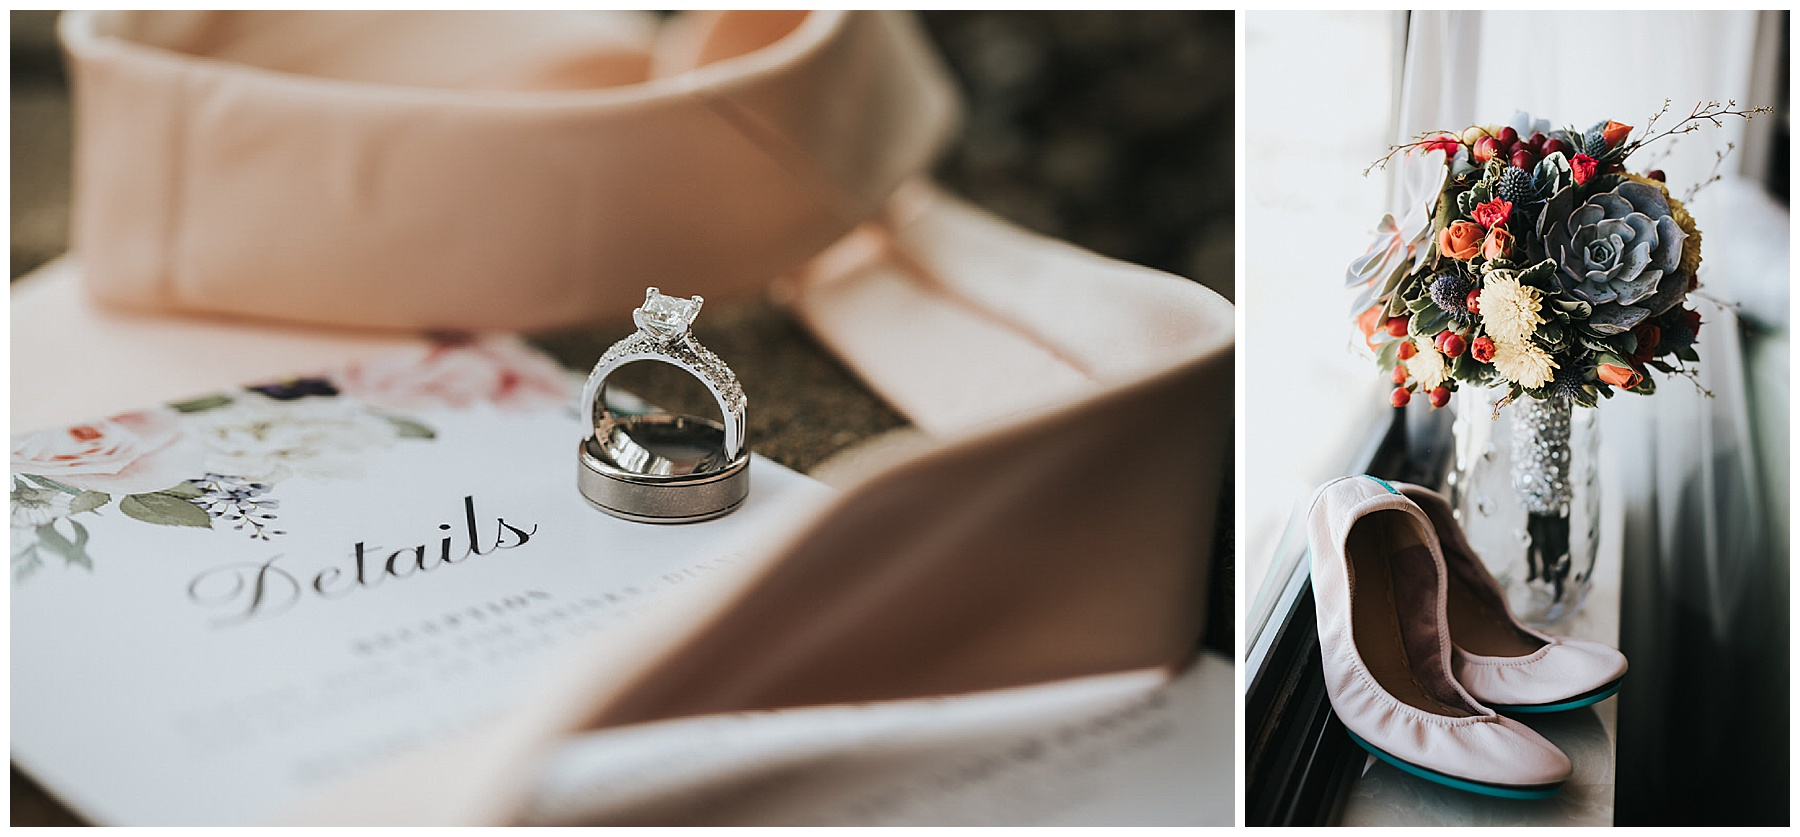 Favorite Wedding & Engagement Images from 2018